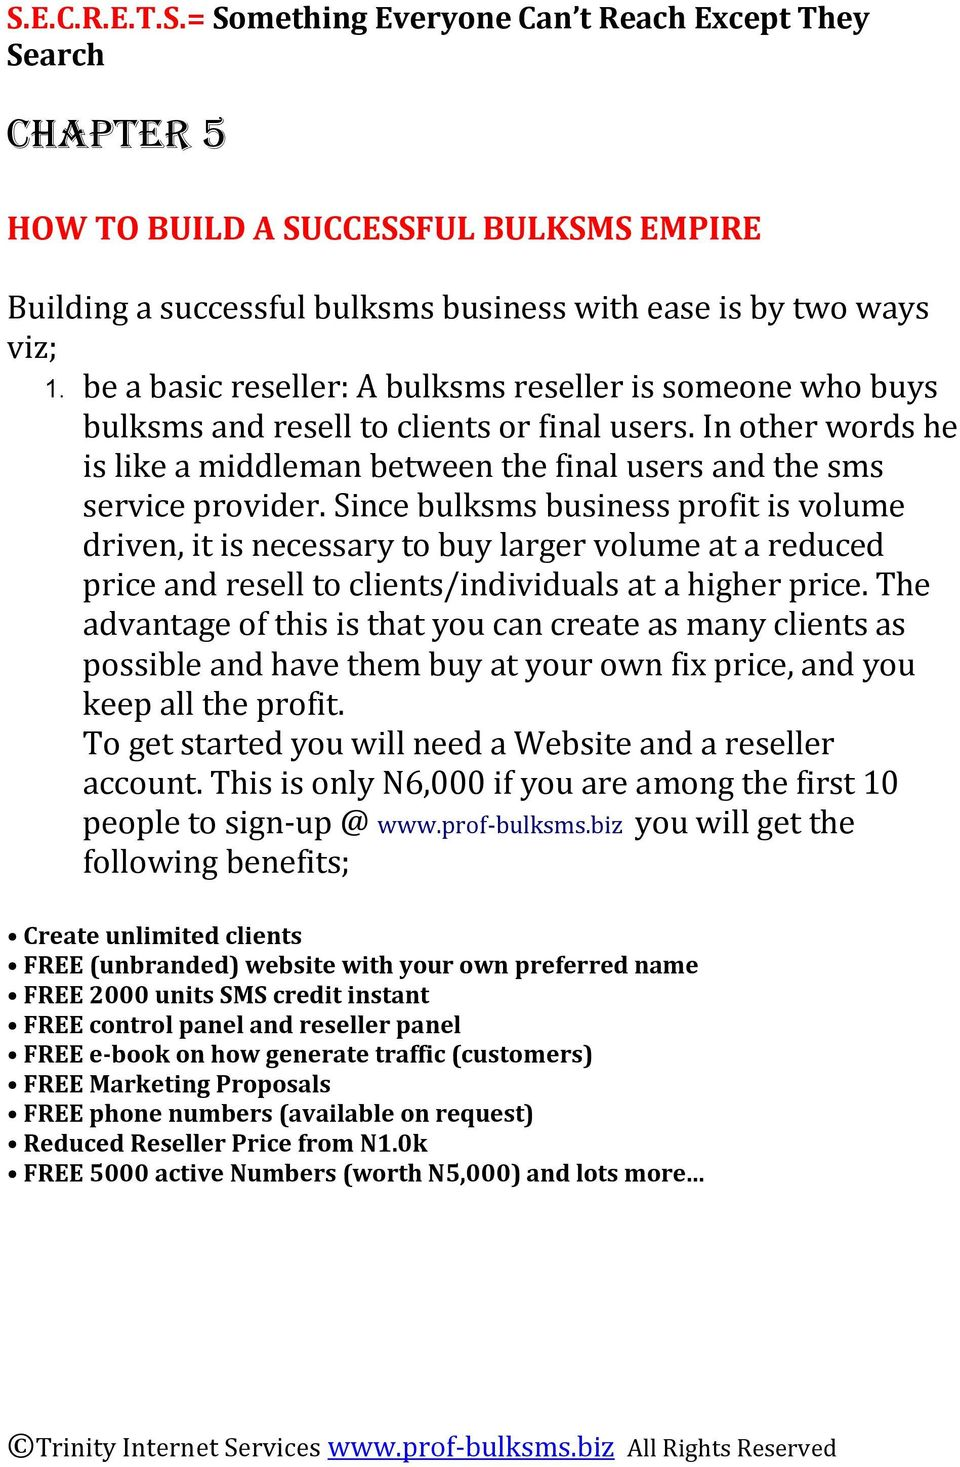 HOW TO START AND RUN YOUR OWN LUCRATIVE BULKSMS BUSINESS